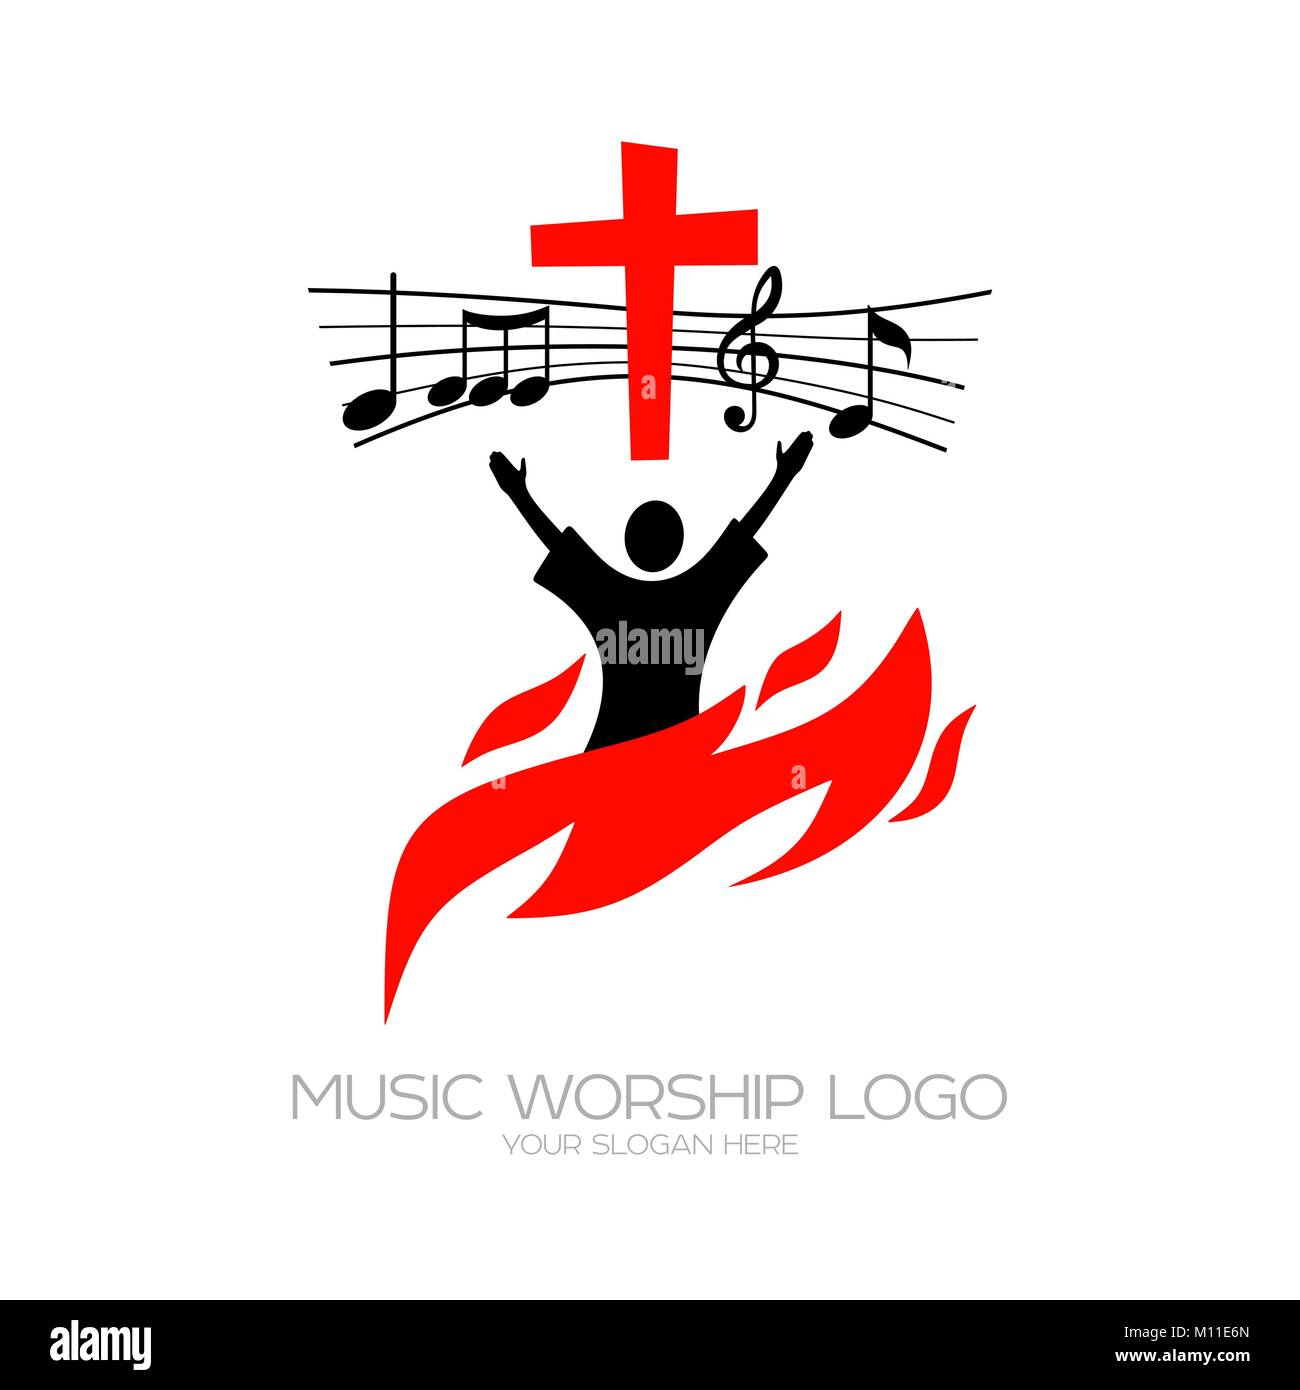 musical motifs in glory of the Musical themes and their symbols in art heritage, such as oil pictures, wall paint-  ment, in the glory of heaven, and individual instruments as part of genre.